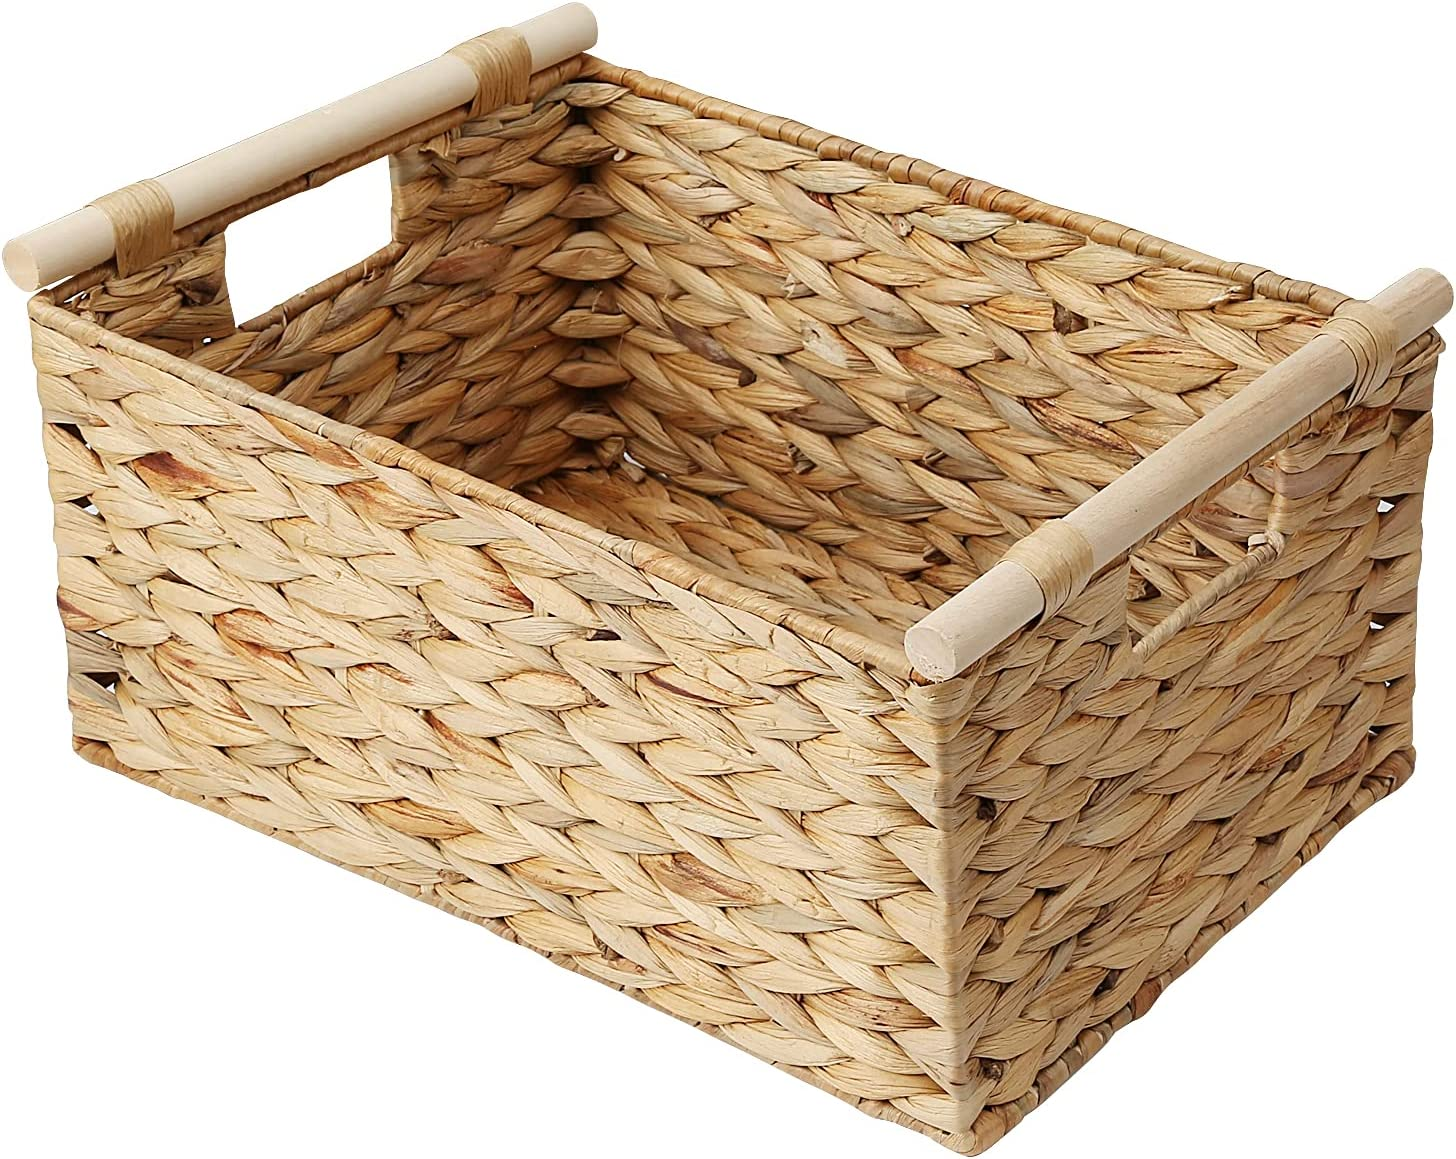 BSTNASI Water Hyacinth Storage Baskets Handle Wooden overseas with Hand-W Beauty products